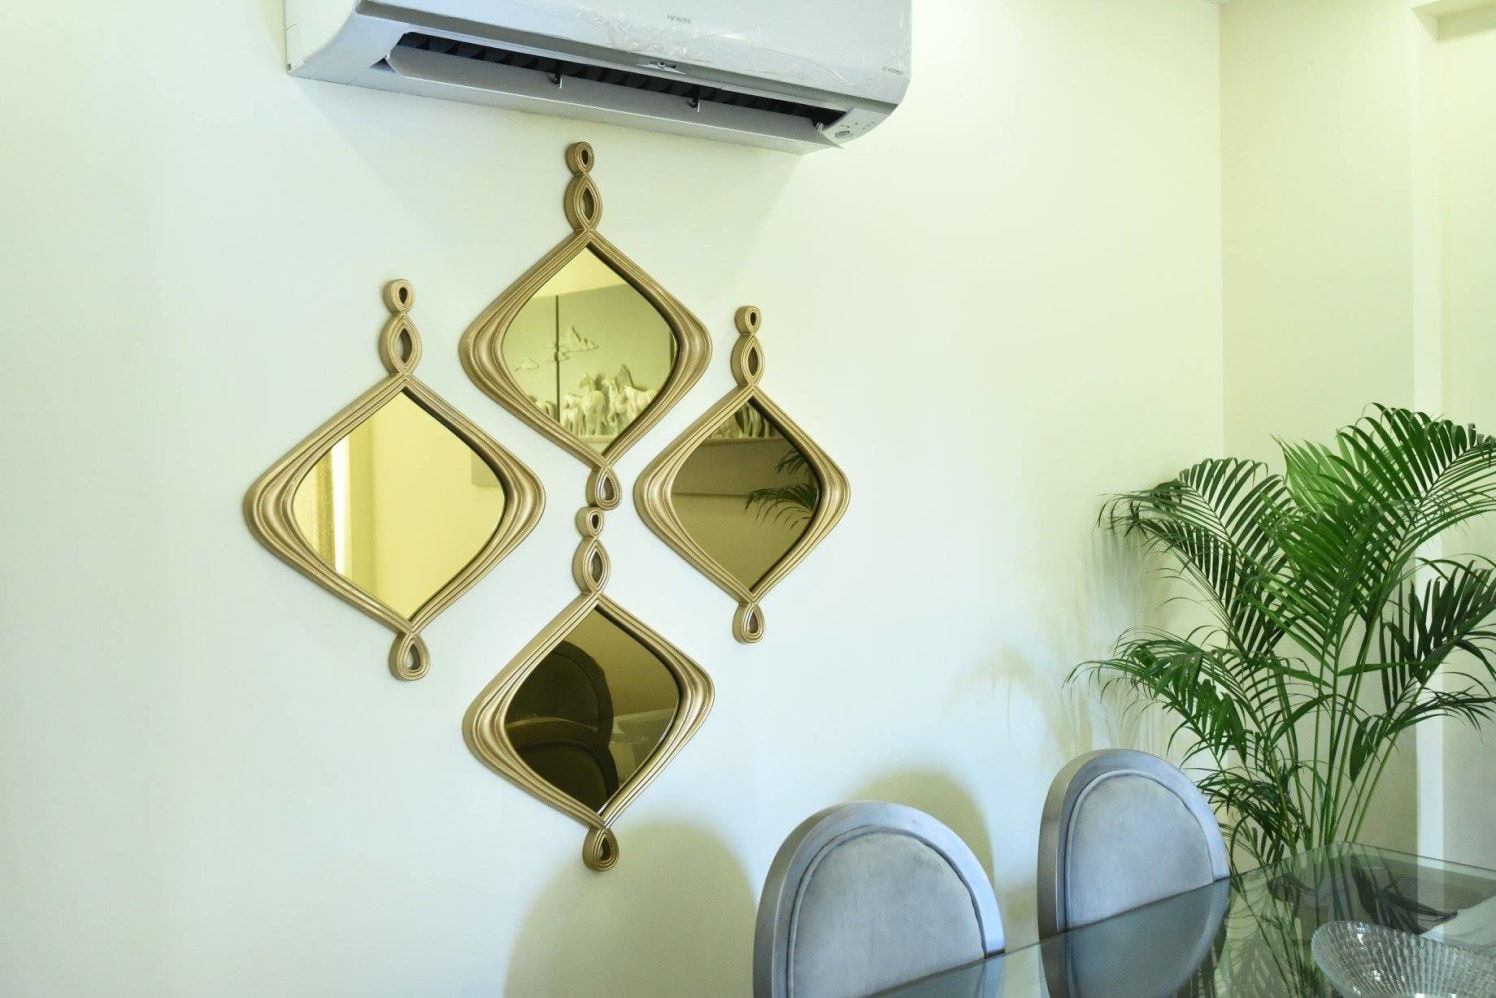 Artisitc Copper Mirrors by Aditya Mohan Modern | Interior Design Photos & Ideas